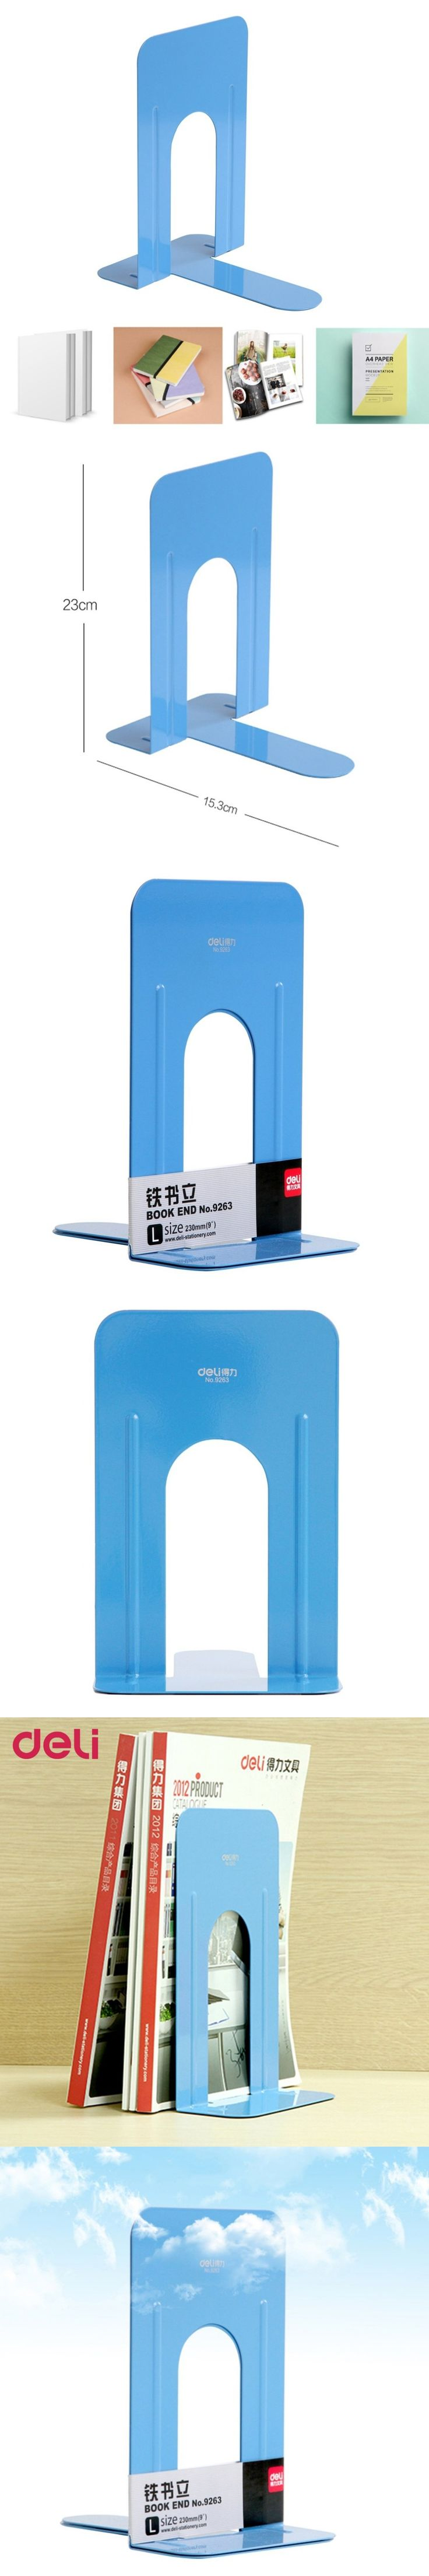 Deli 9263 Solid Color Practical Book Stand Ends 230mm Height Durable Heavy Duty Metal End